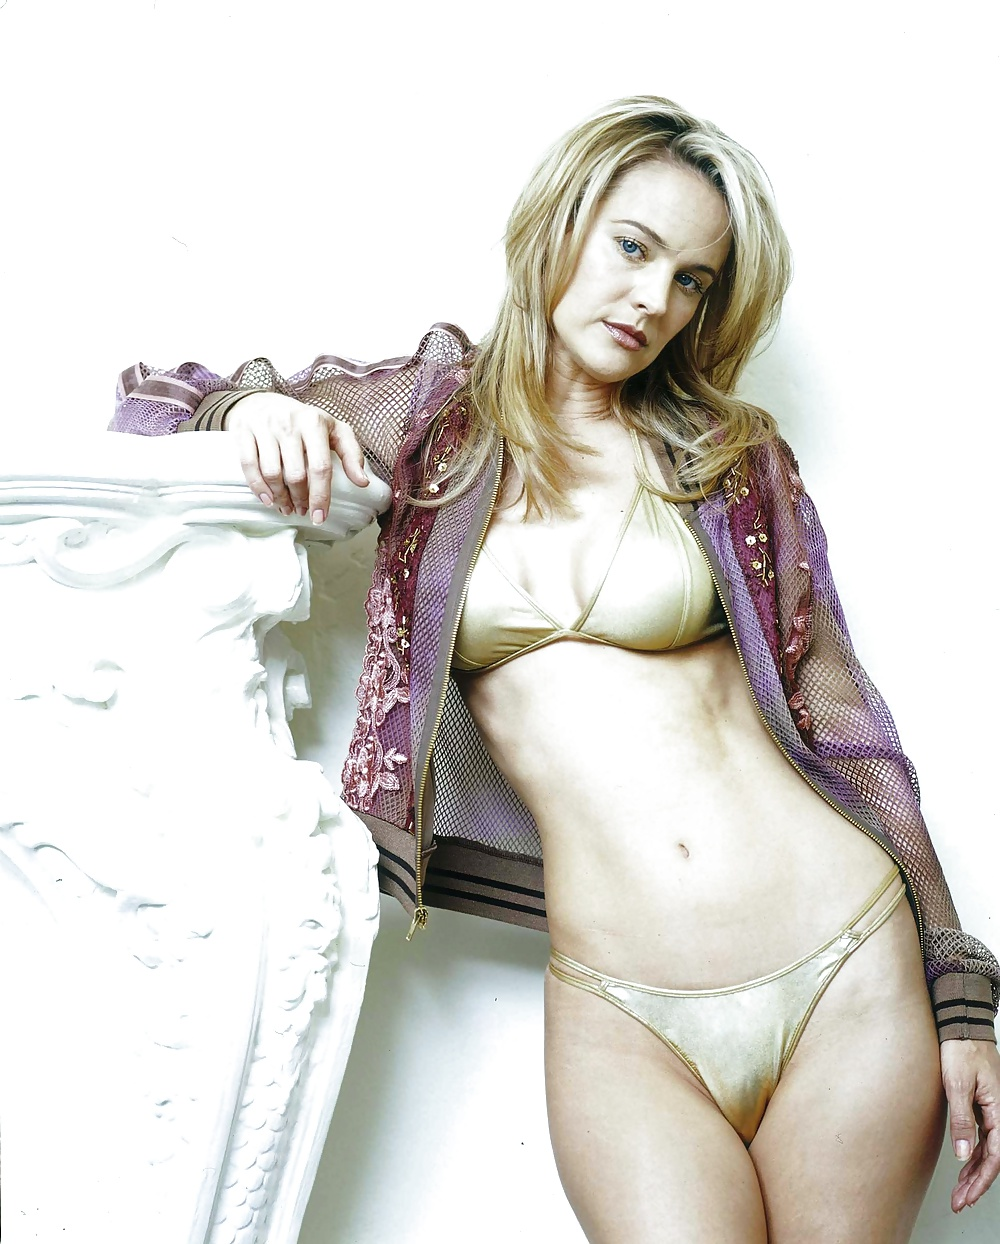 Sharon Case Nude, Topless Pictures, Playboy Photos, Sex Scene Uncensored